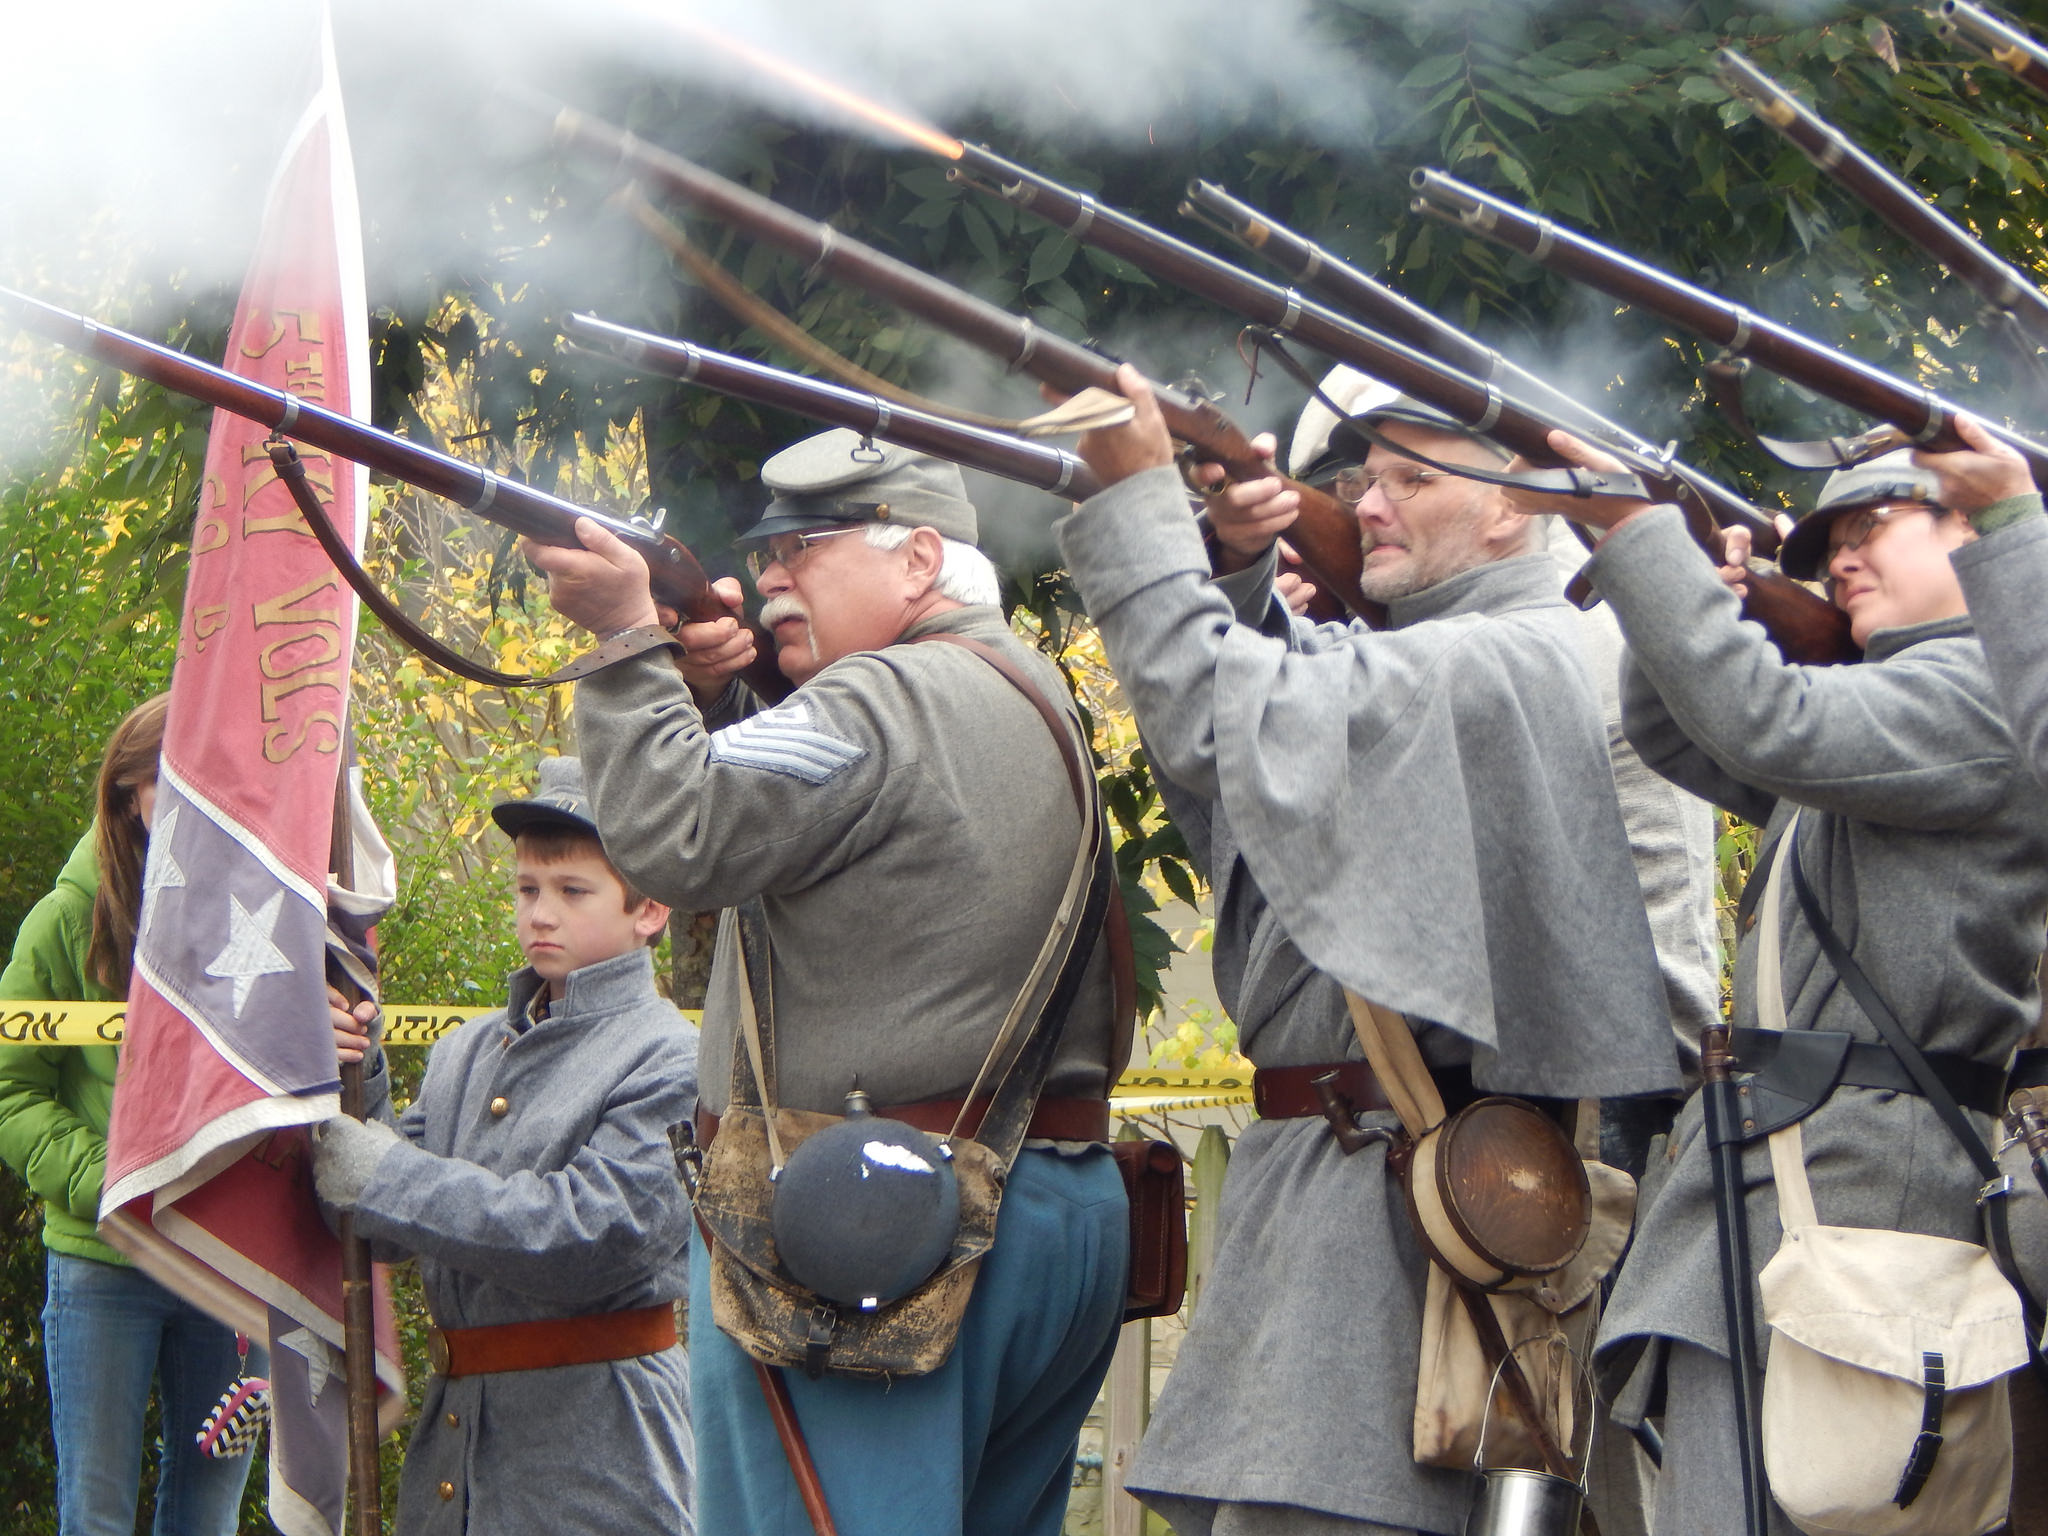 The One Civil War Battle In West Virginia That Nearly